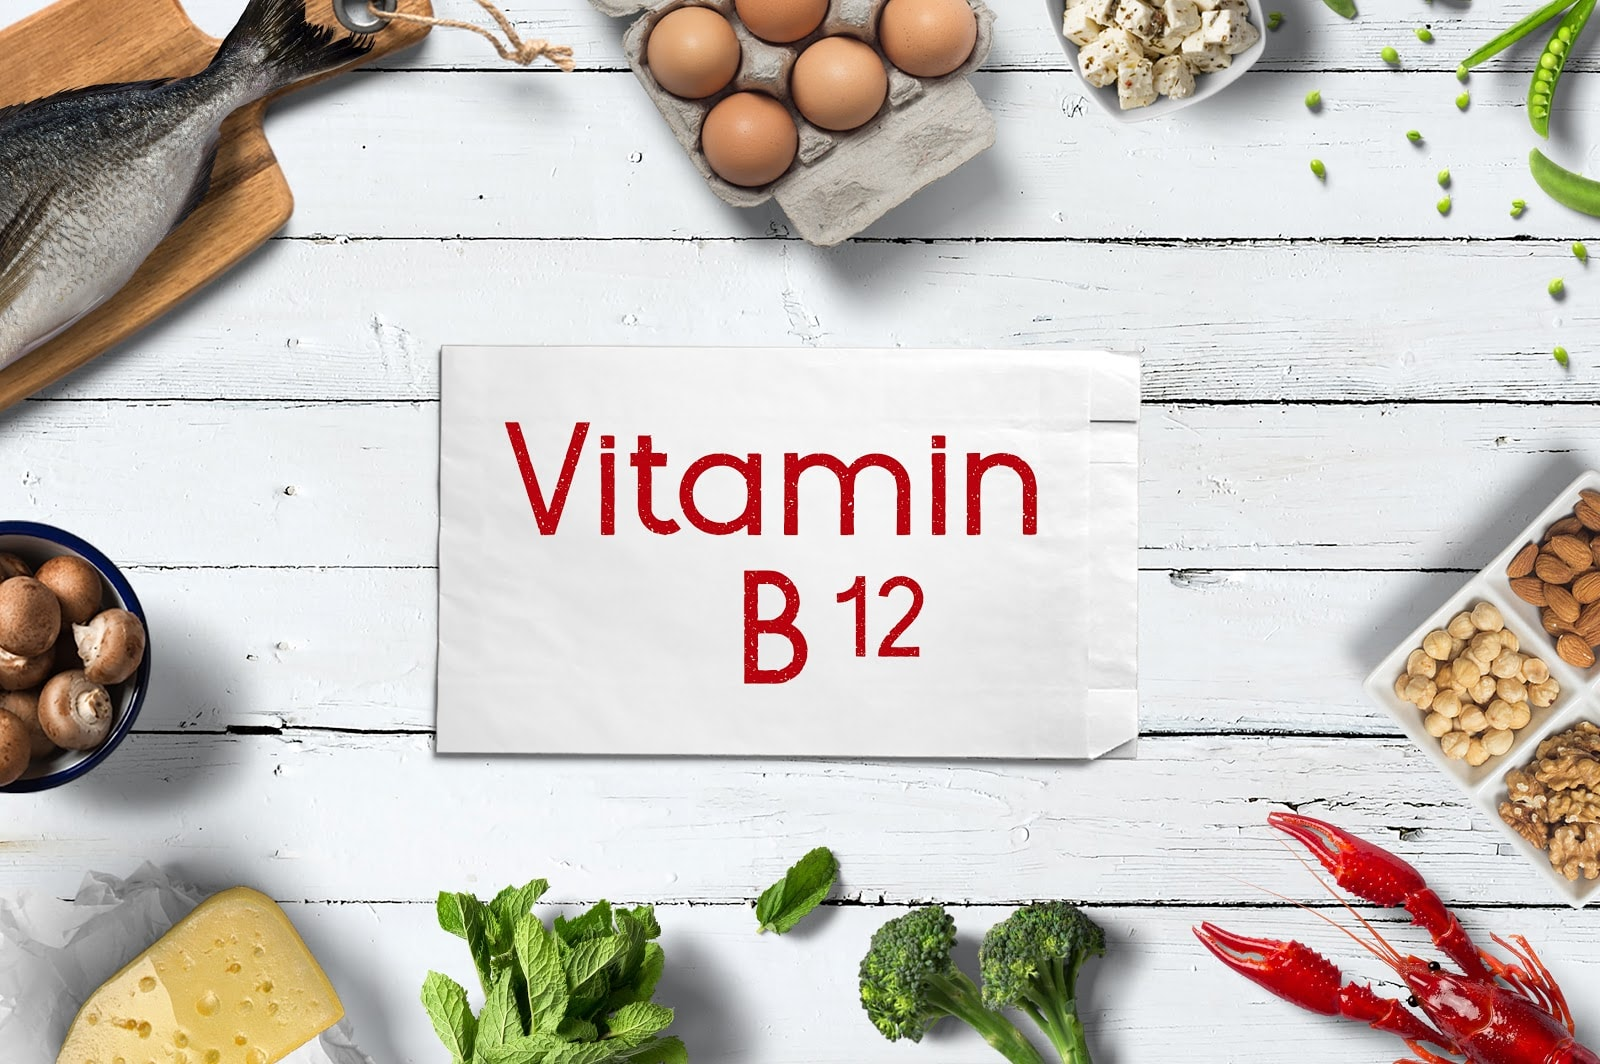 B12 Deficiency: The Troubling Symptoms and Smart Solutions